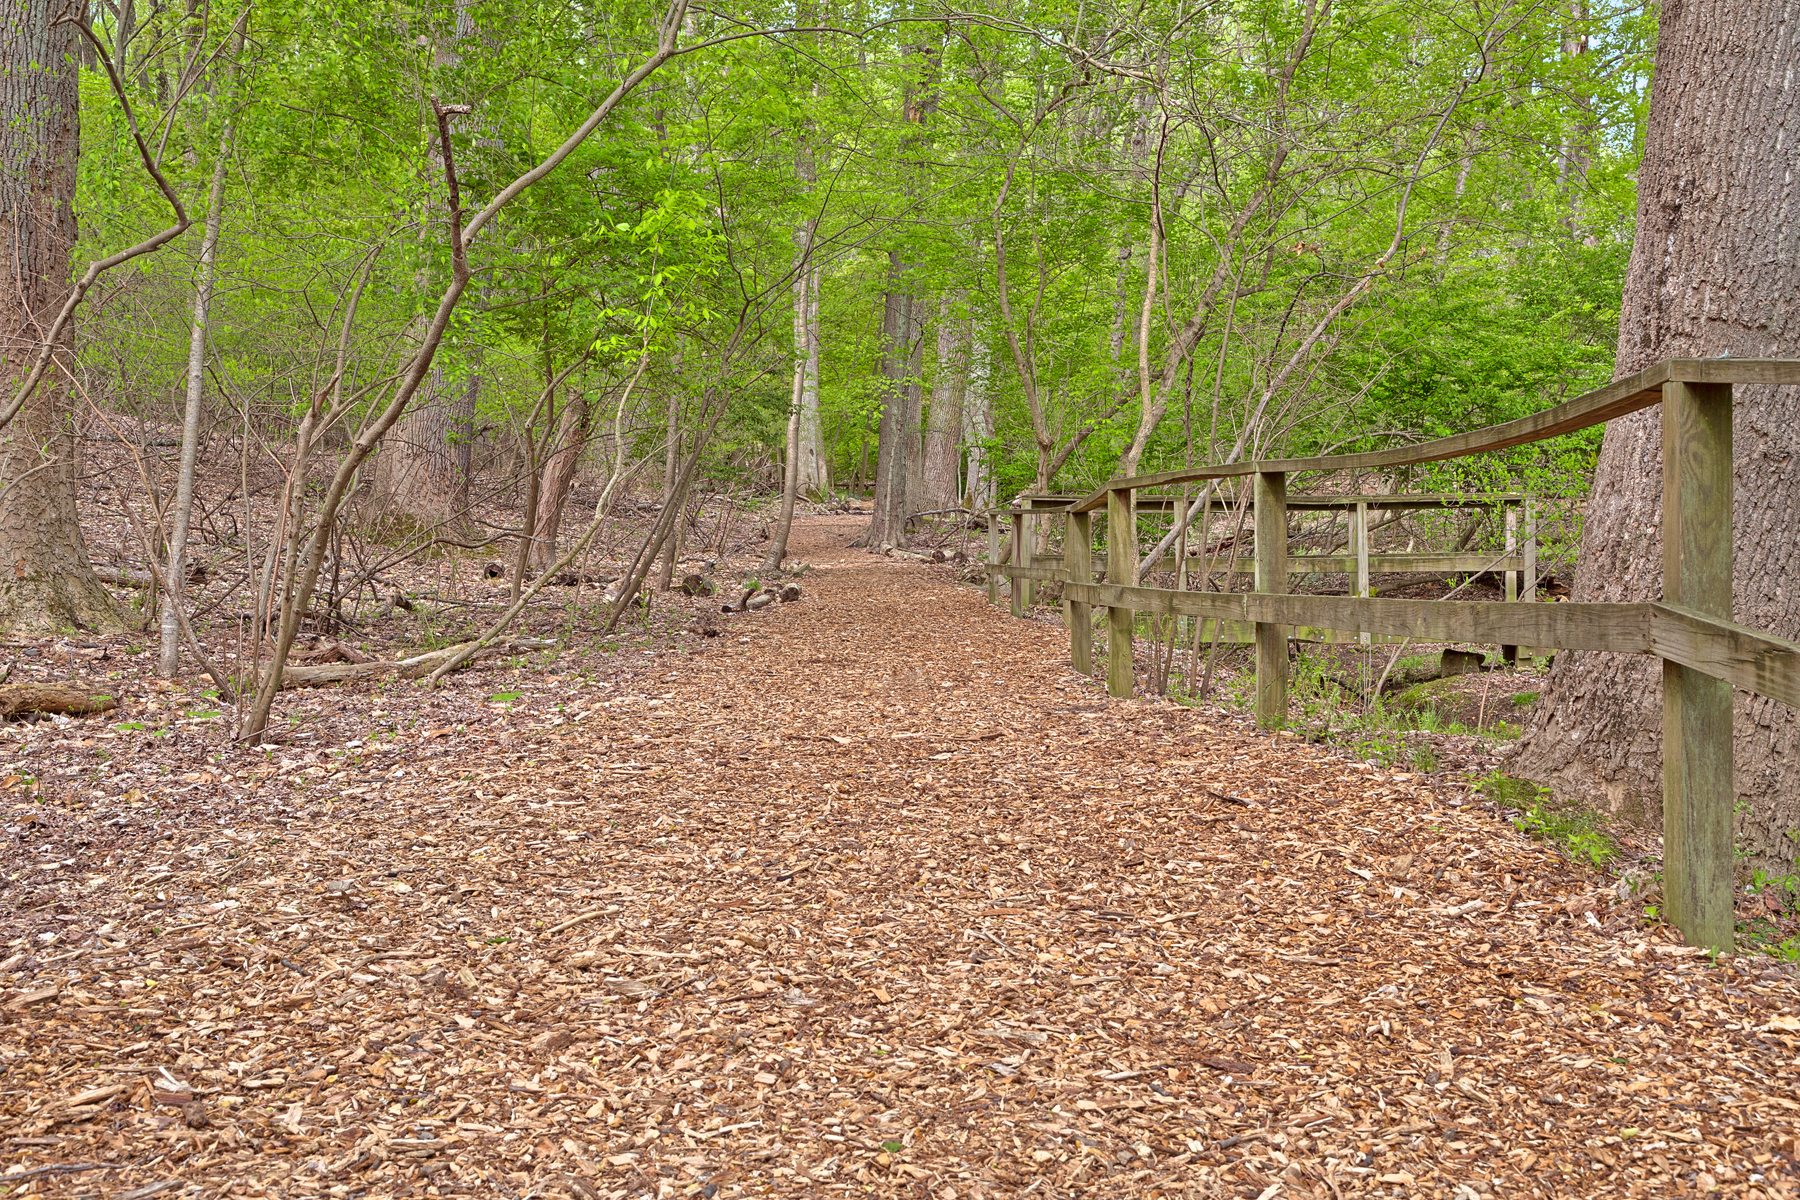 Woodend sanctuary trail - hdr photo